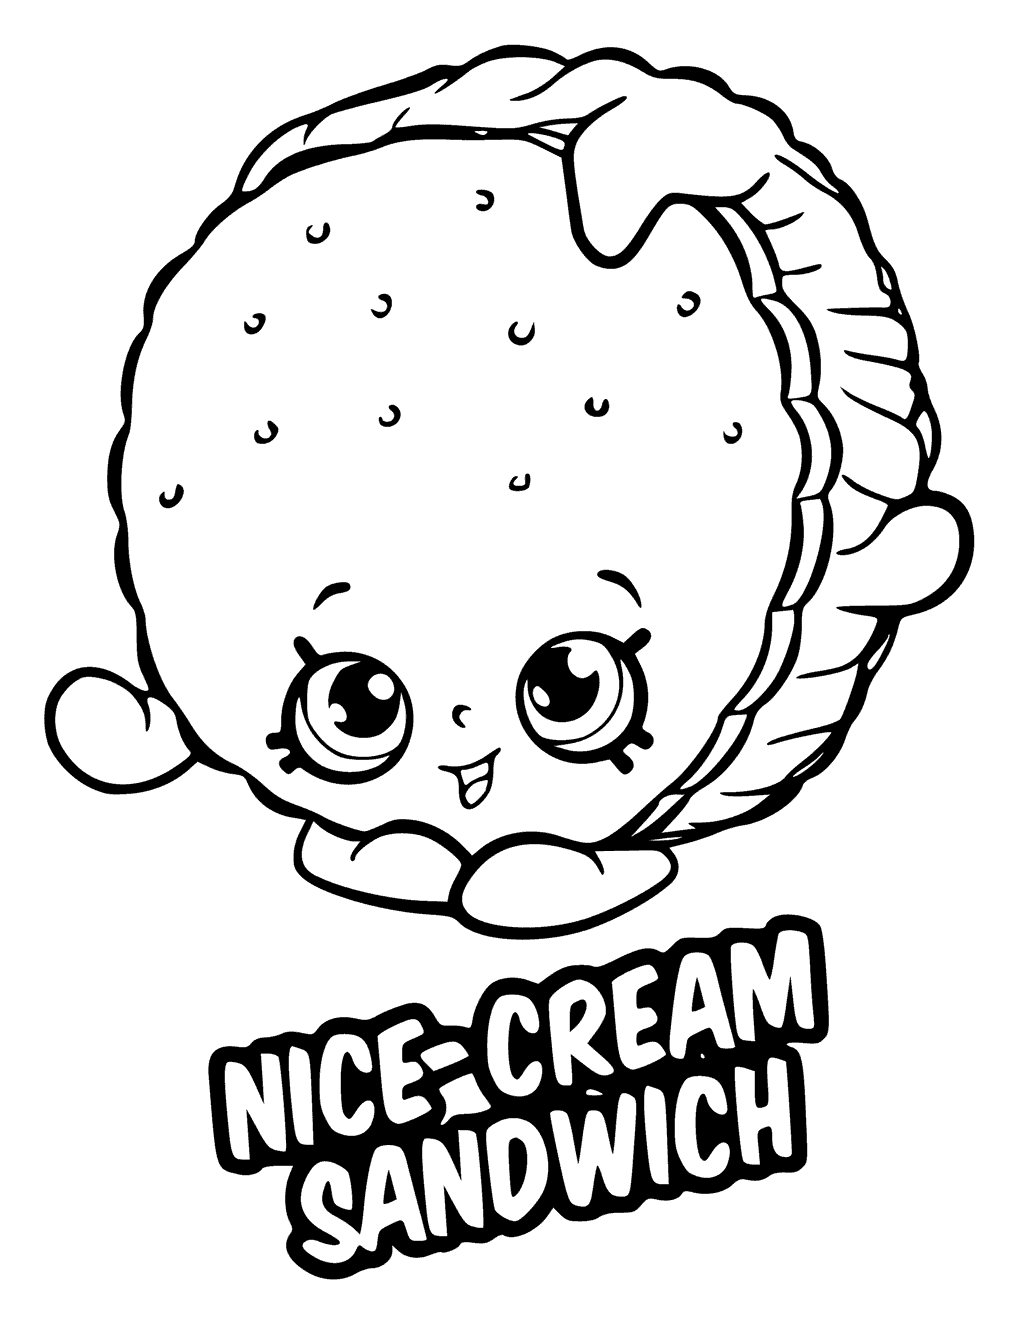 Shopkins Season 6 Nice-Cream Sandwich Coloring Page